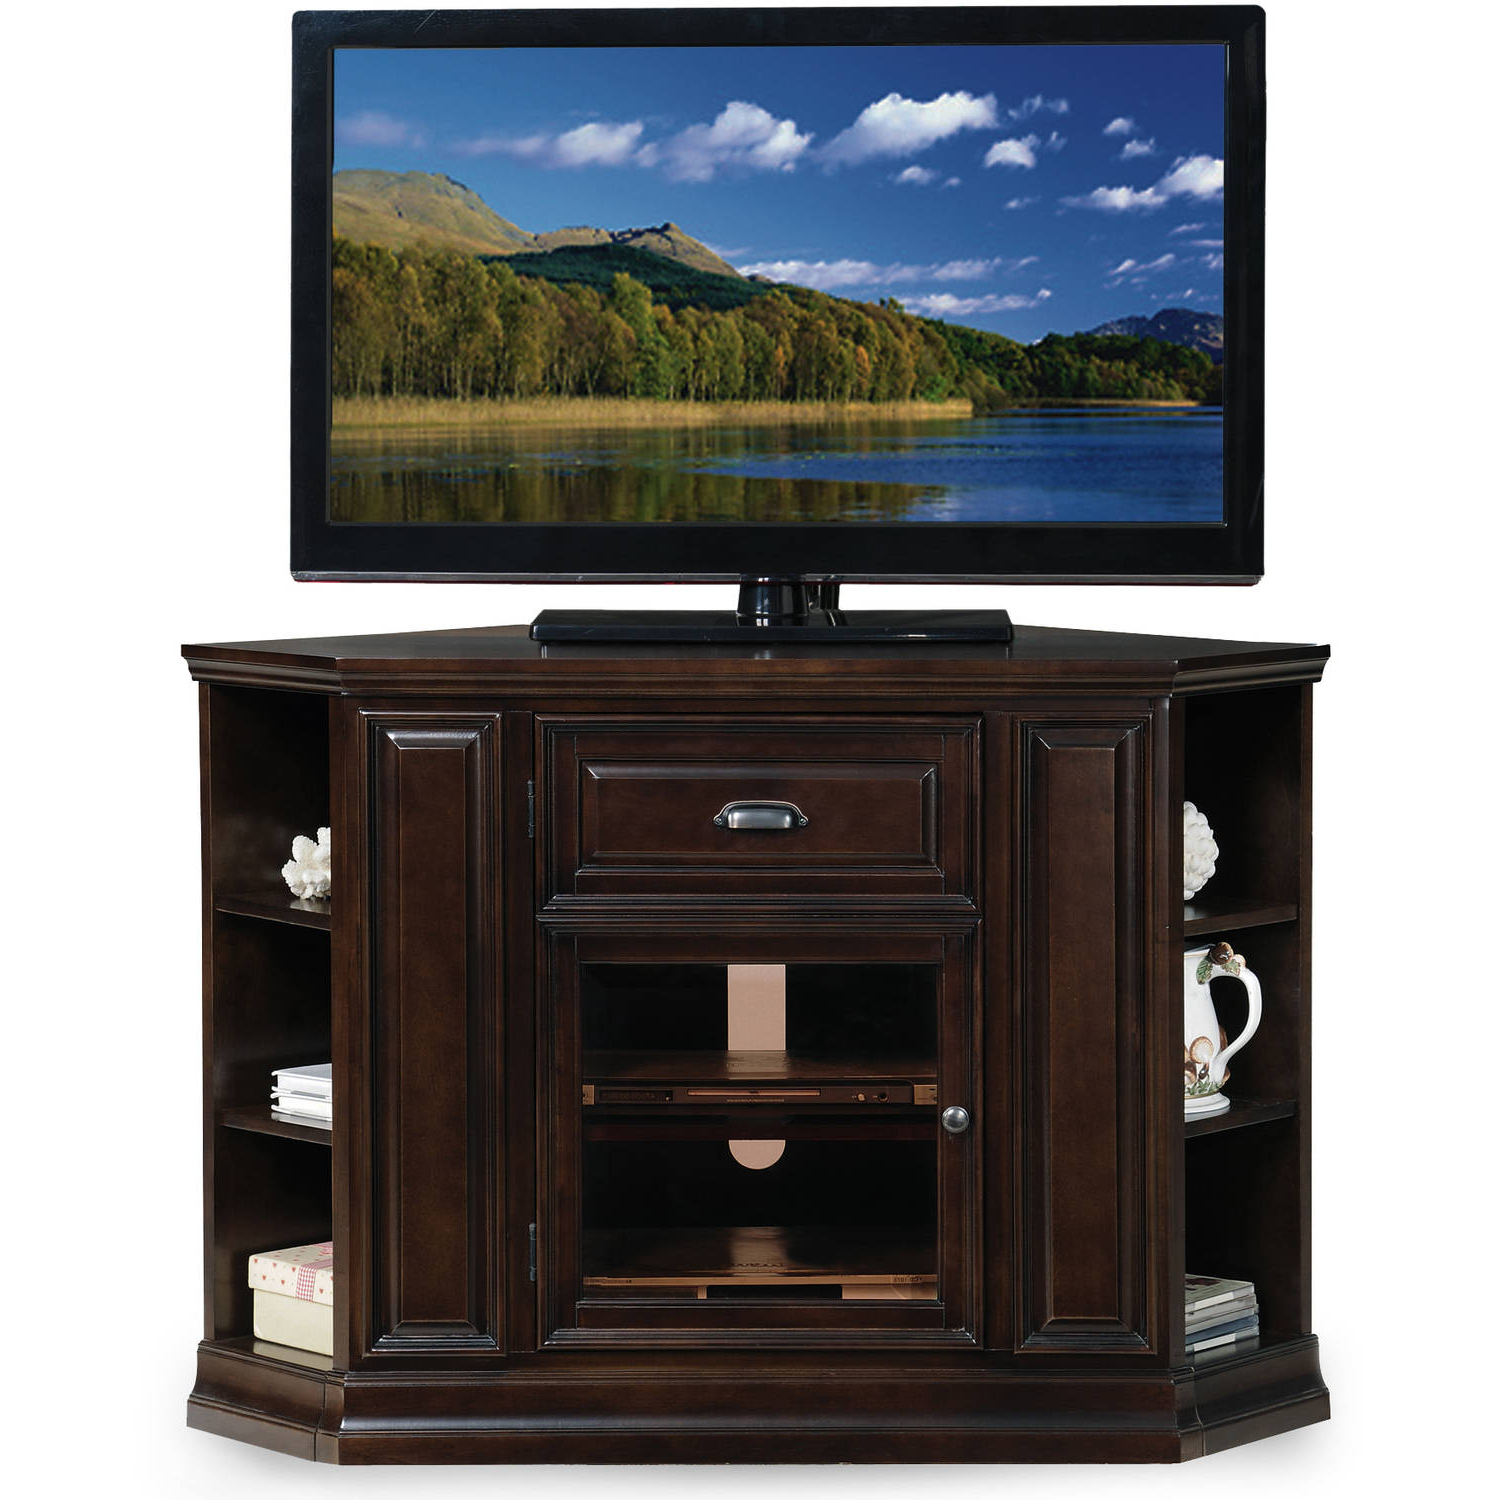 """Best And Newest Leick Home 32"""" High Corner Tv Stand W/bookcase For Tv's Up Pertaining To Paulina Tv Stands For Tvs Up To 32"""" (View 15 of 25)"""